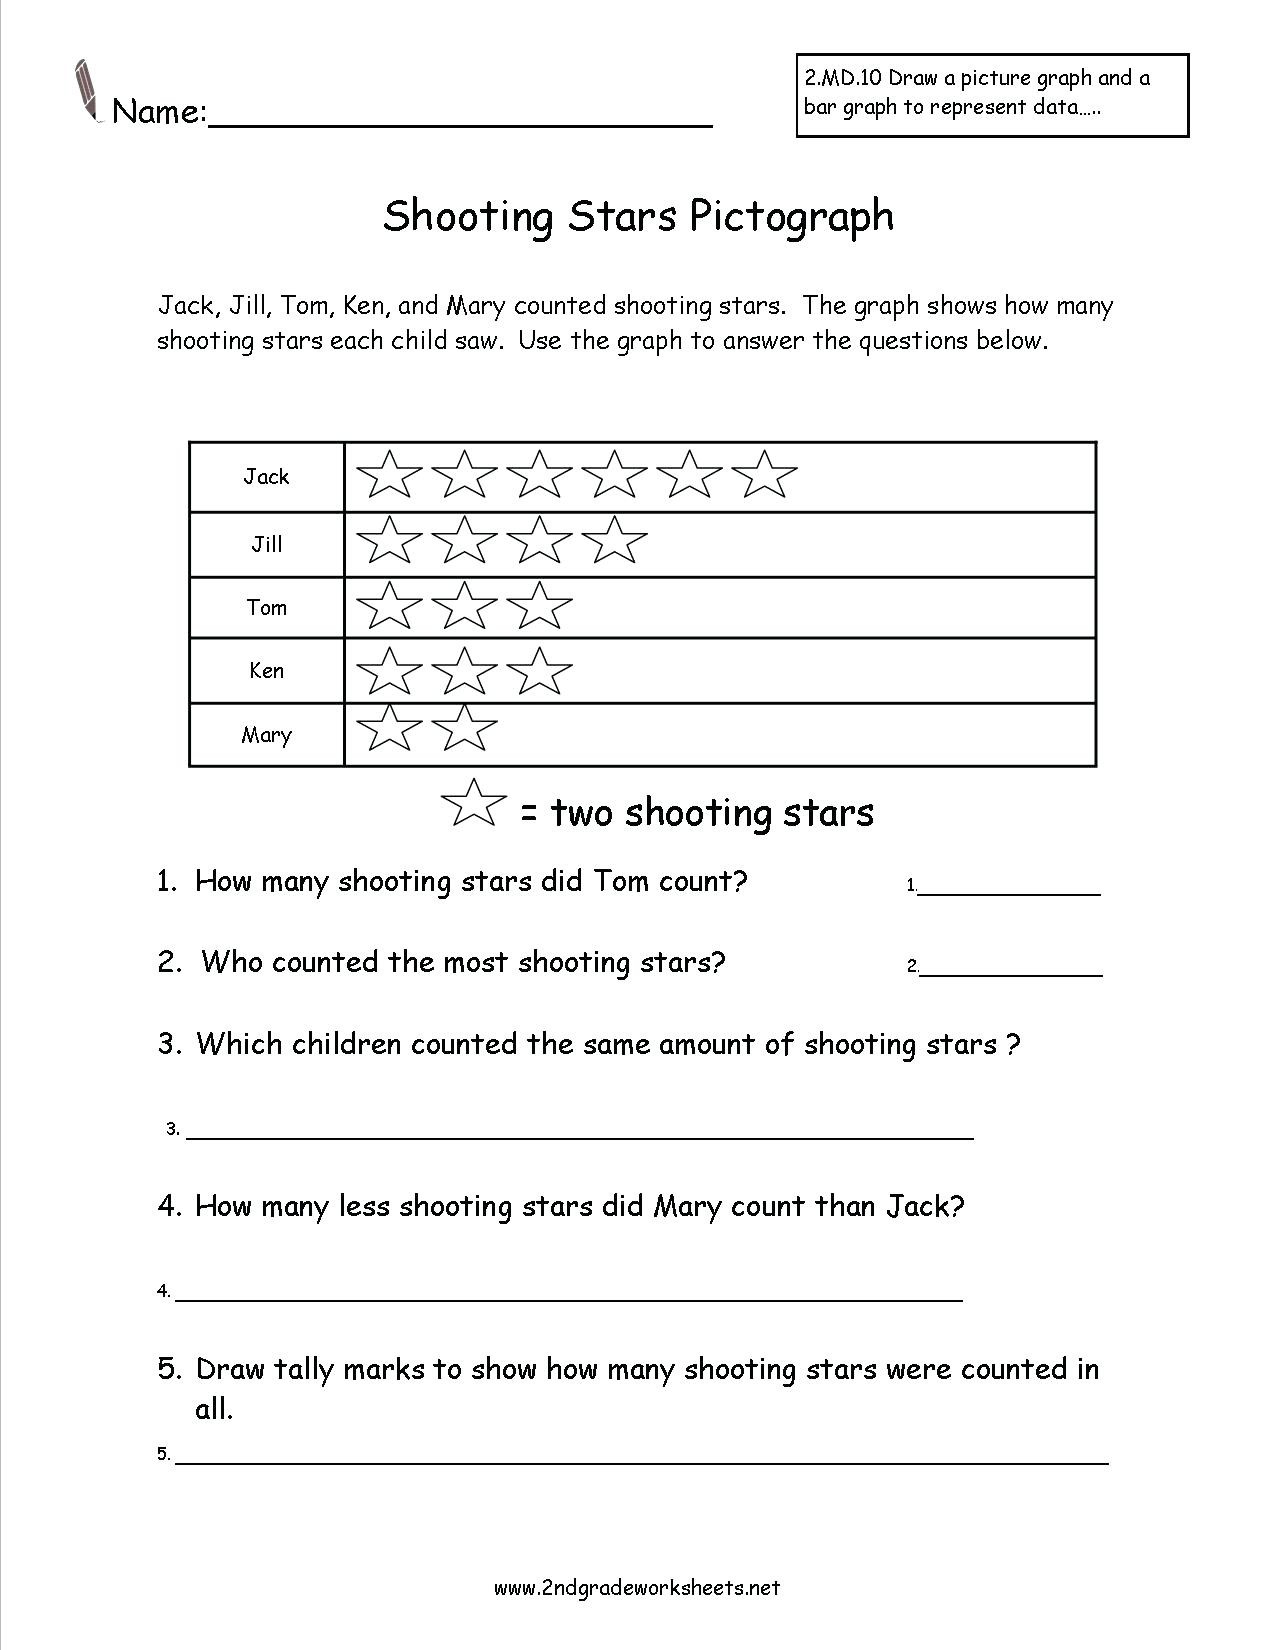 6th Grade Brain Teasers Worksheets